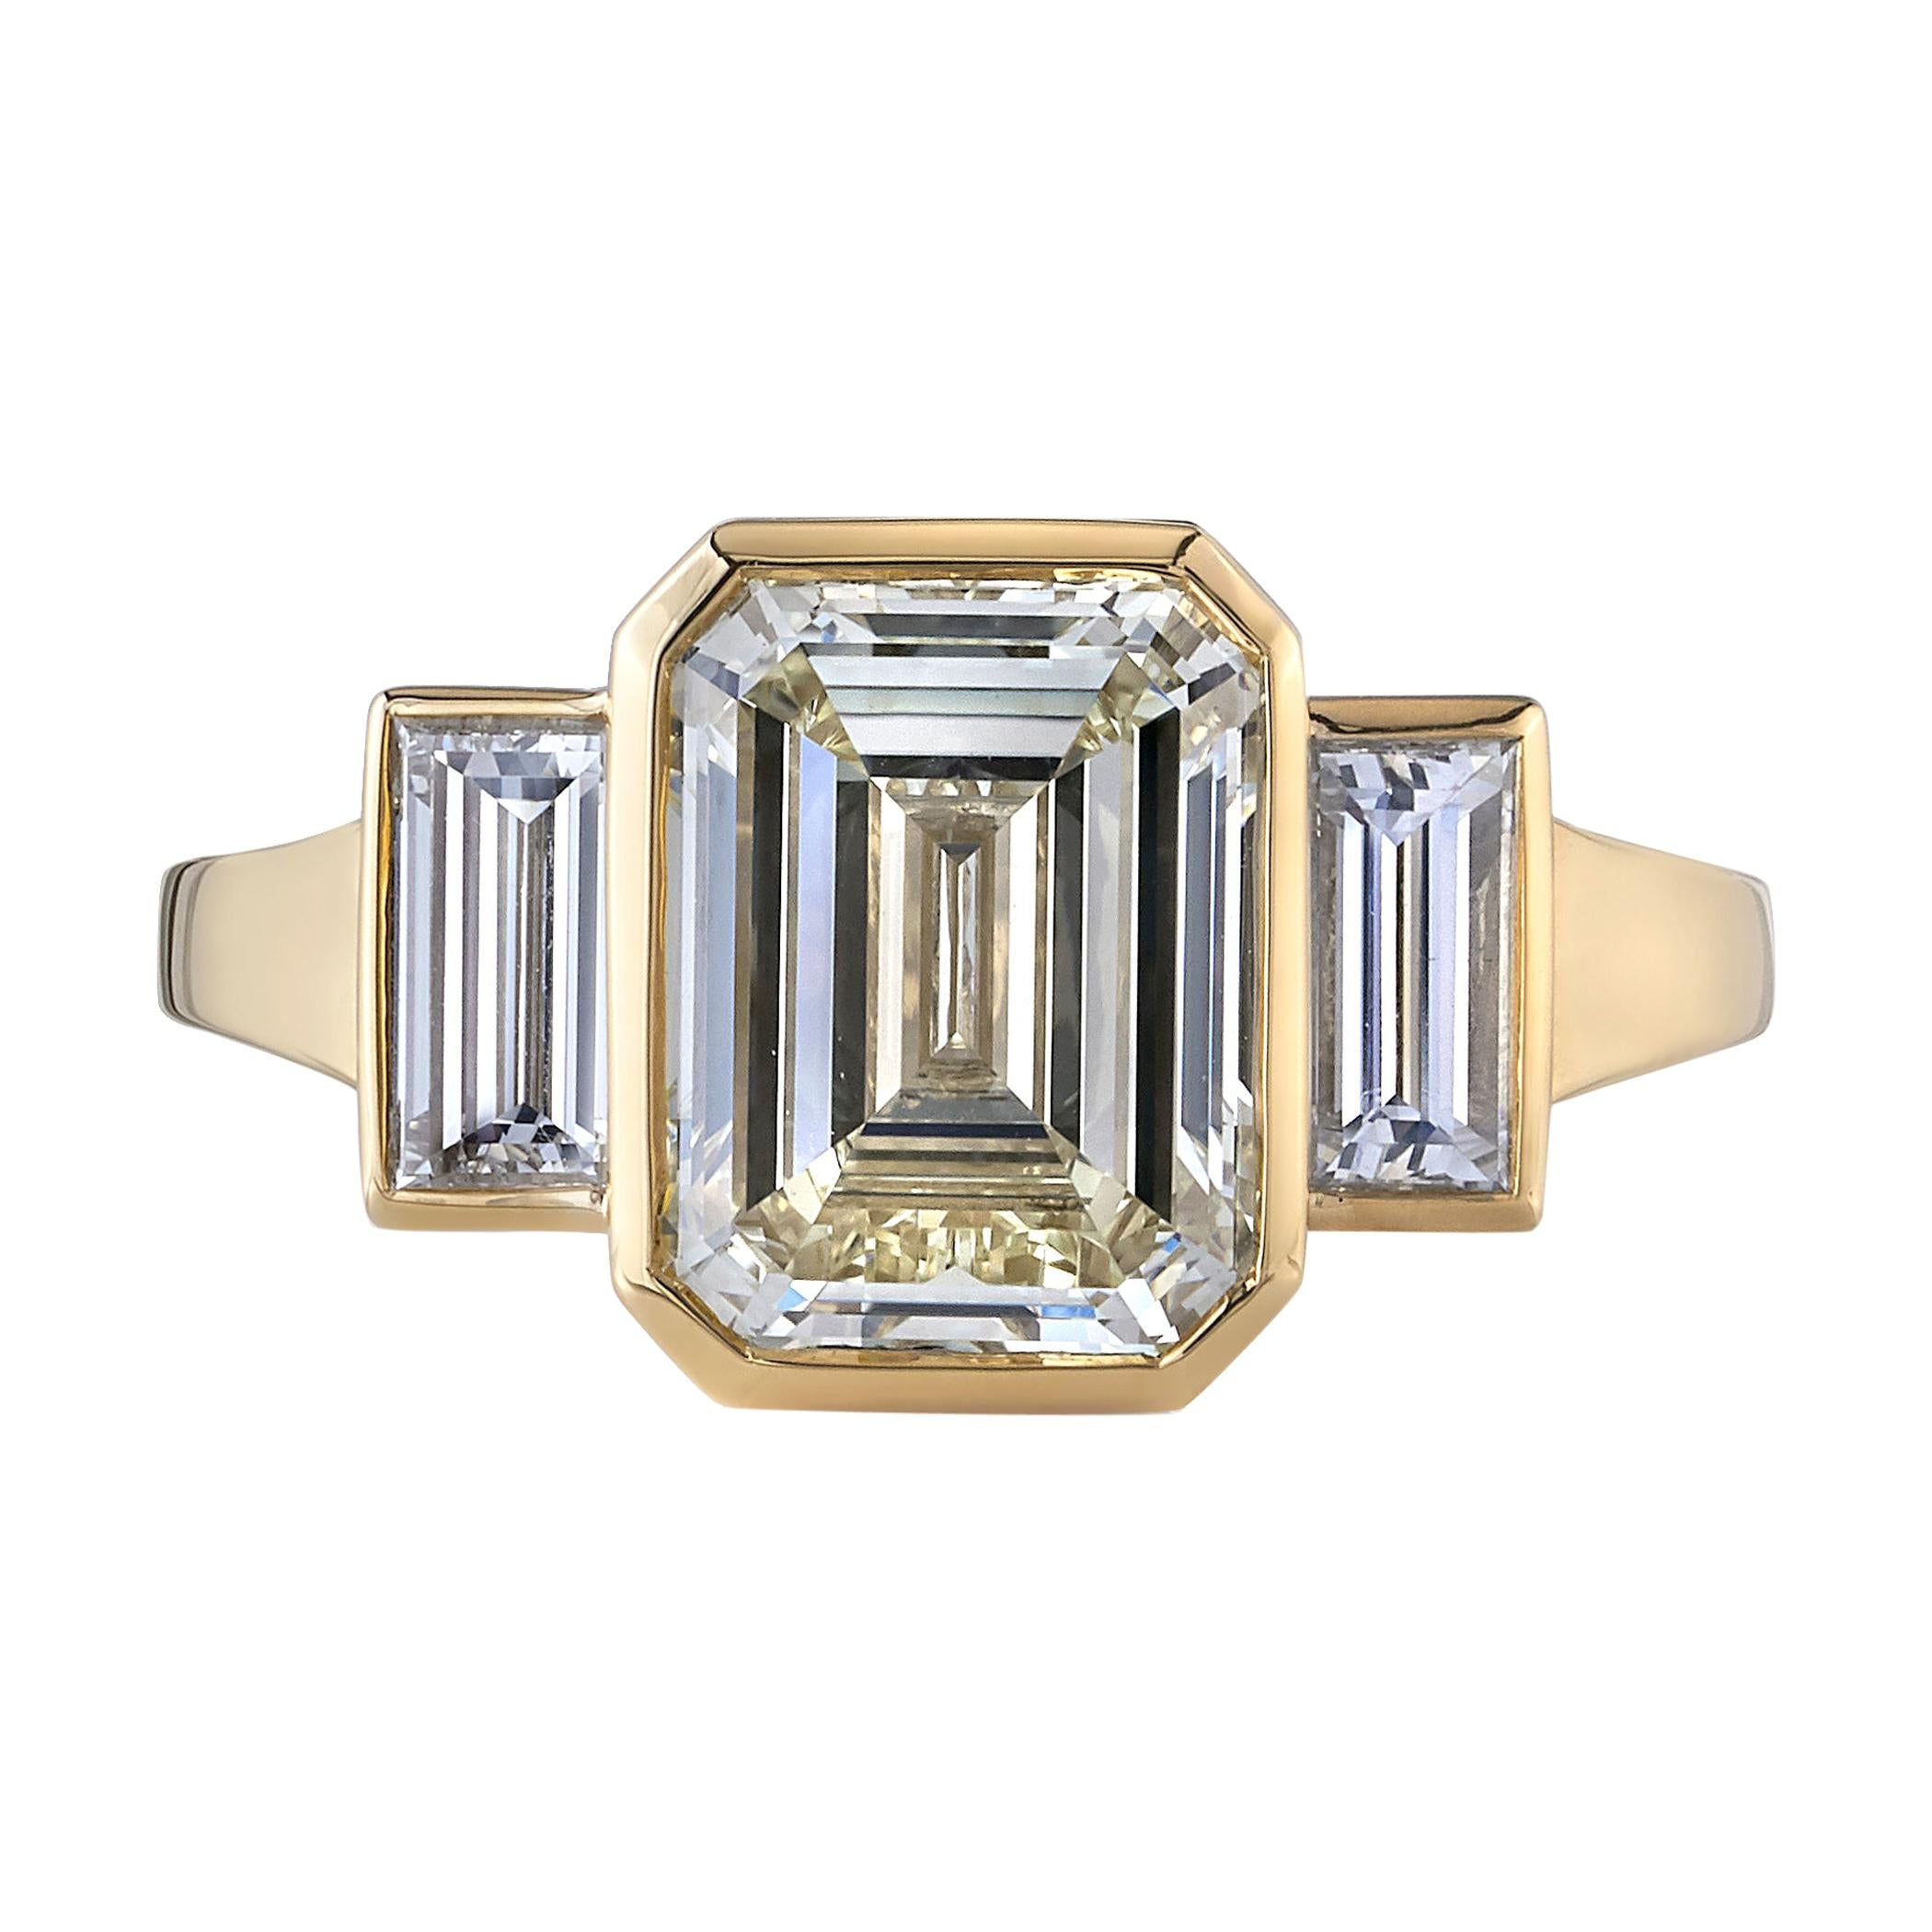 3.01 Carat Emerald Cut Diamond Set in a Handcrafted Yellow Gold Engagement Ring